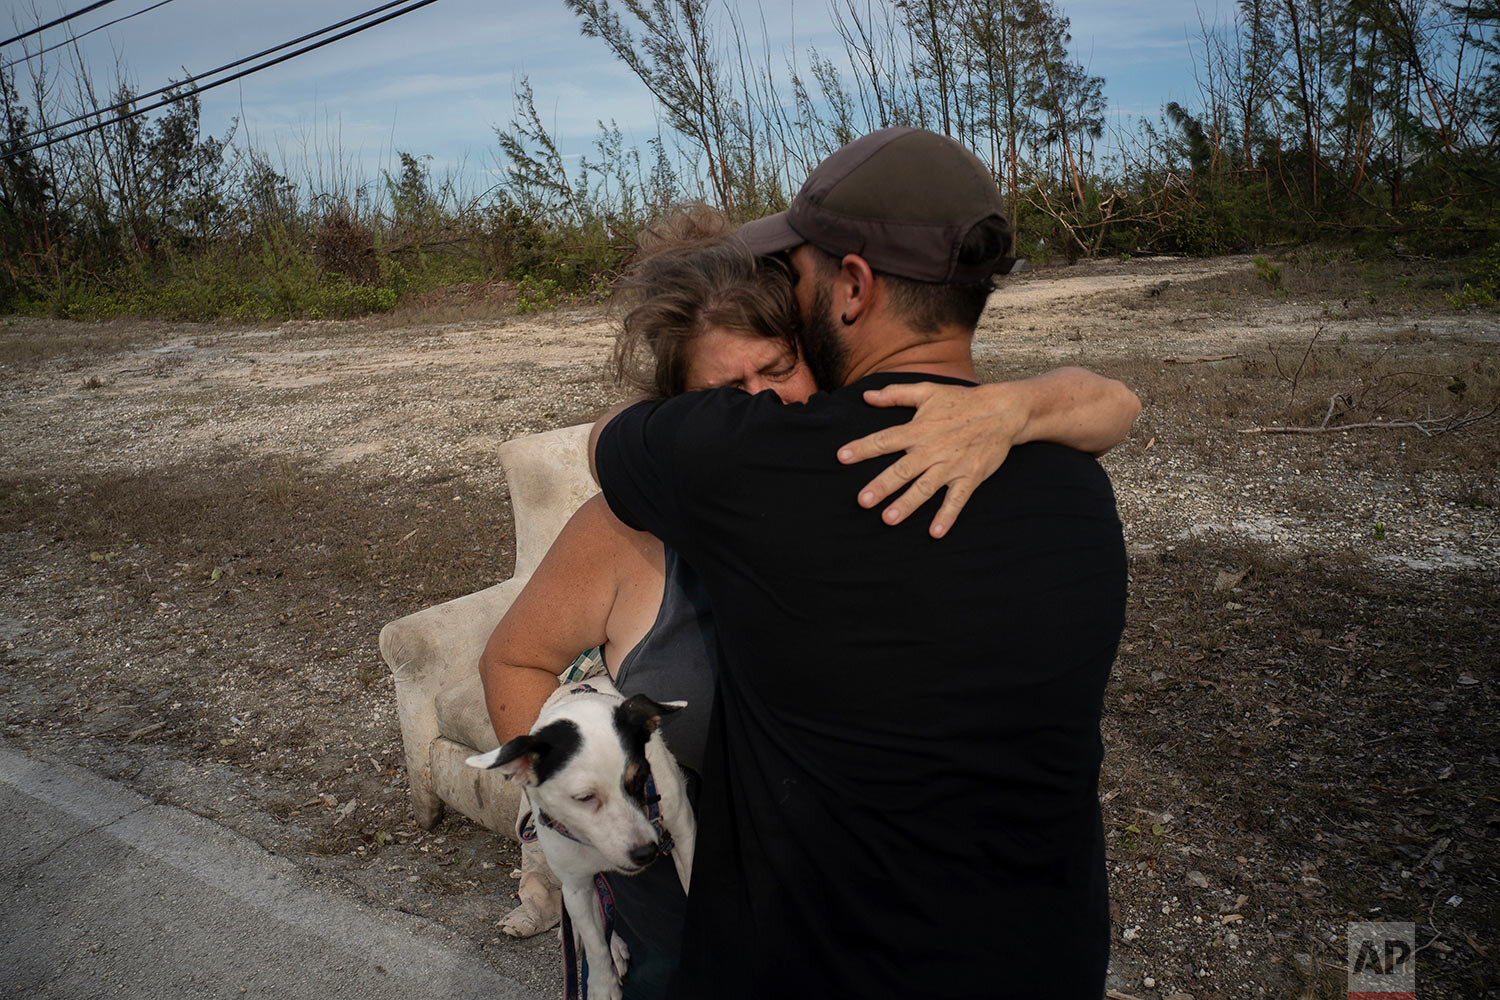 Sissel Mosvold embraces a volunteer who helped rescue her mother from her home, flooded by the waters of Hurricane Dorian, in the outskirts of Freeport, Bahamas, Wednesday, Sept. 4, 2019. (AP Photo/Ramon Espinosa)